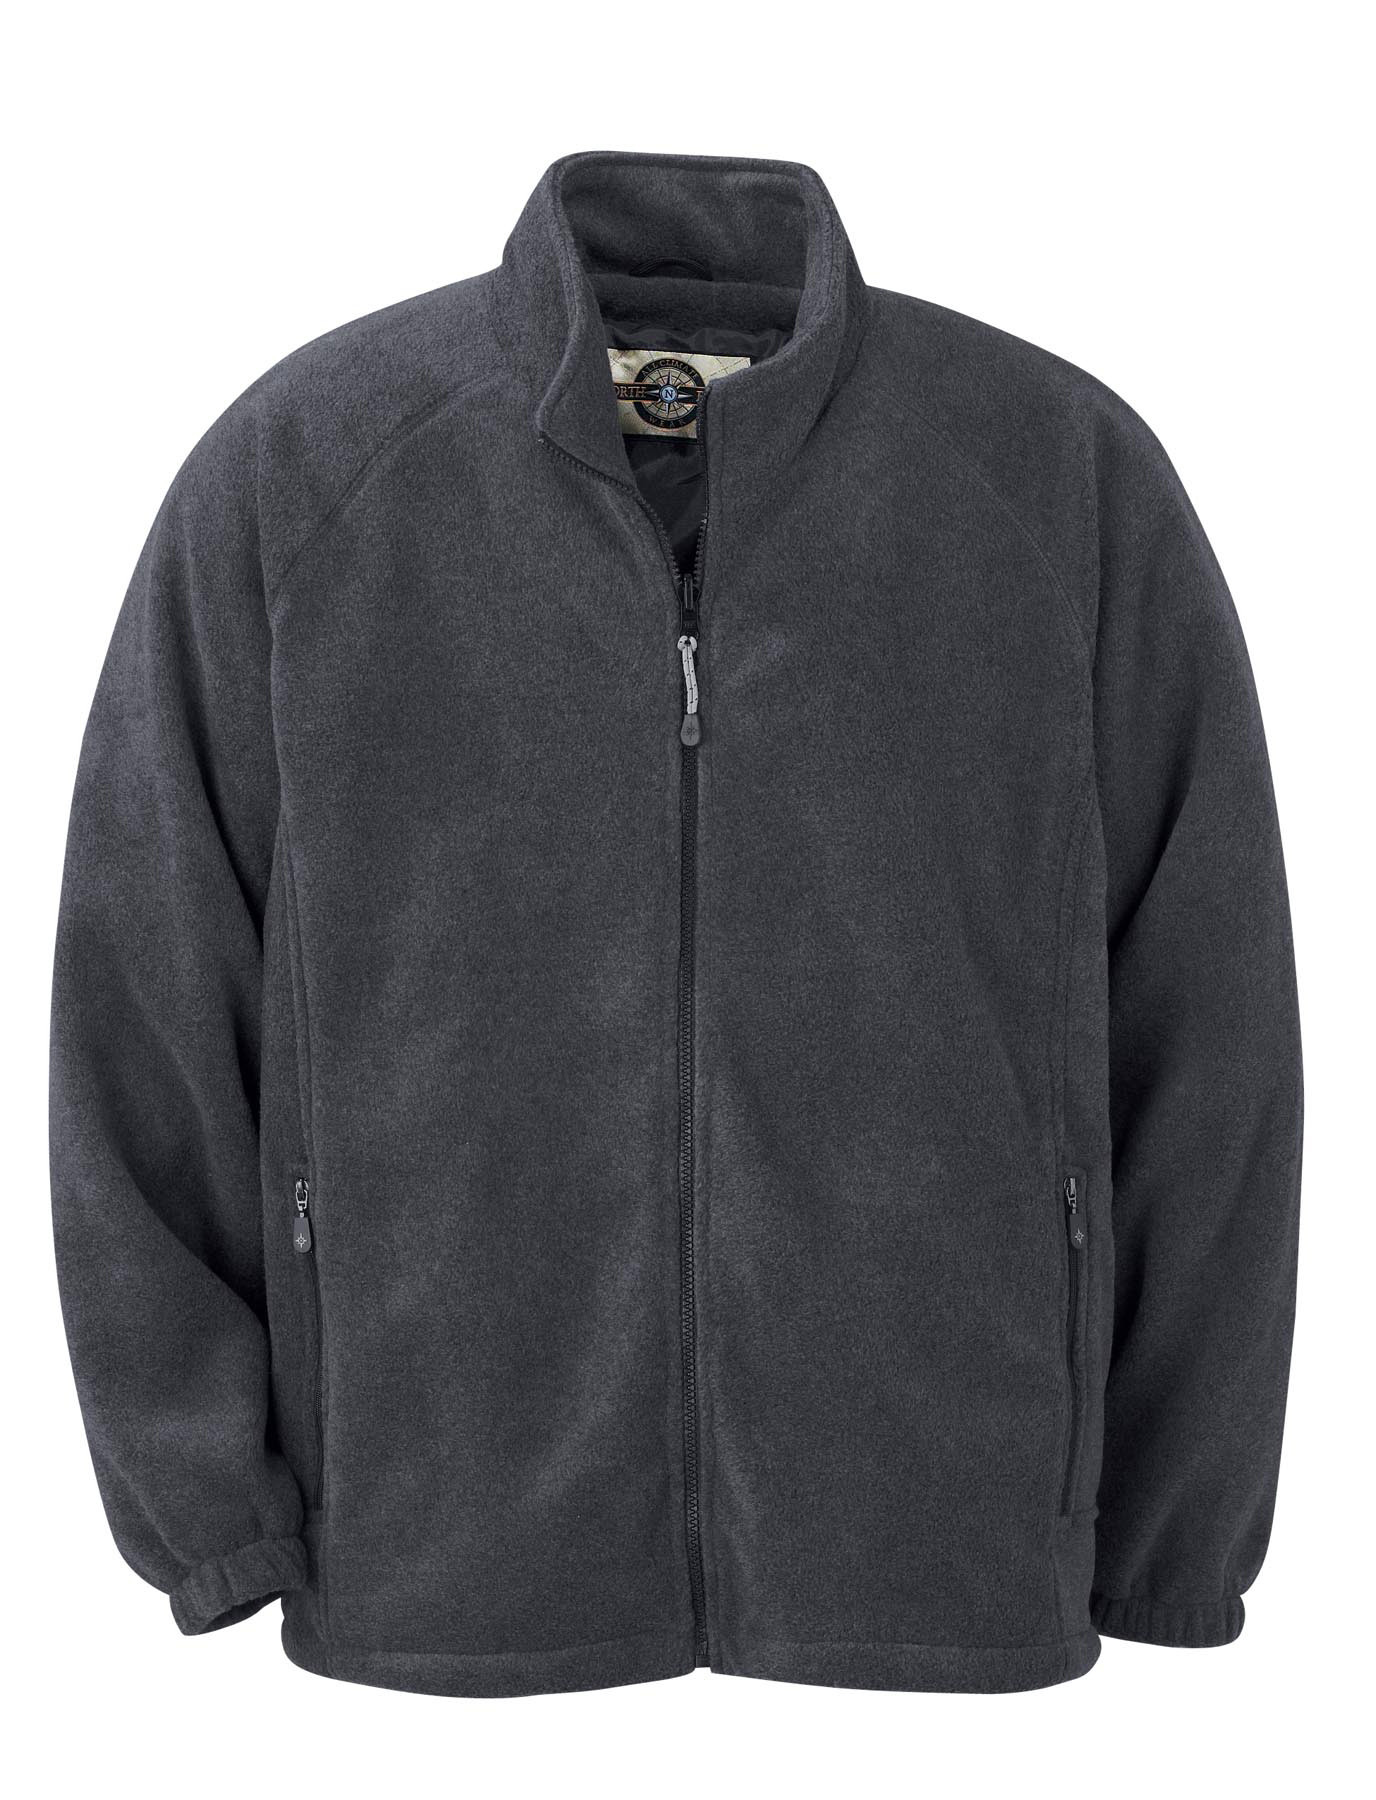 Ash City Poly Fleece 88108 - Men's Interactive Fleece ...